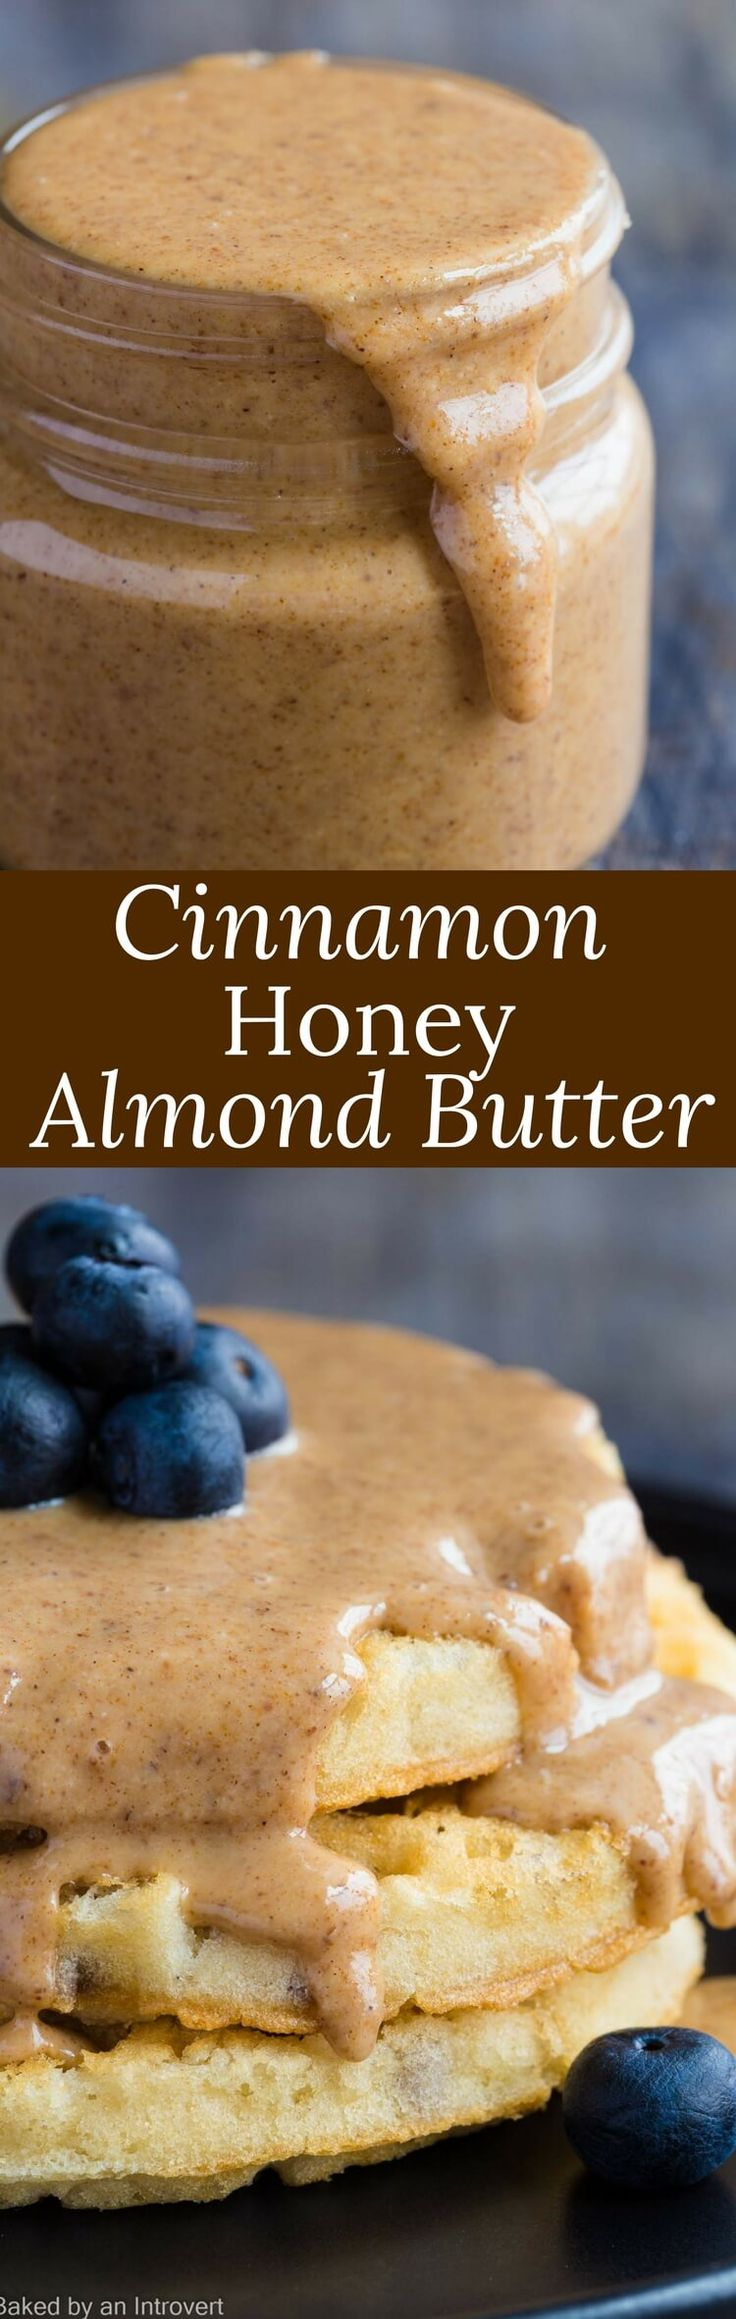 Homemade Cinnamon Honey Almond Butter with blueberry waffles is an honestly nutritious way to enjoy breakfast with simple, clean ingredients. #AD